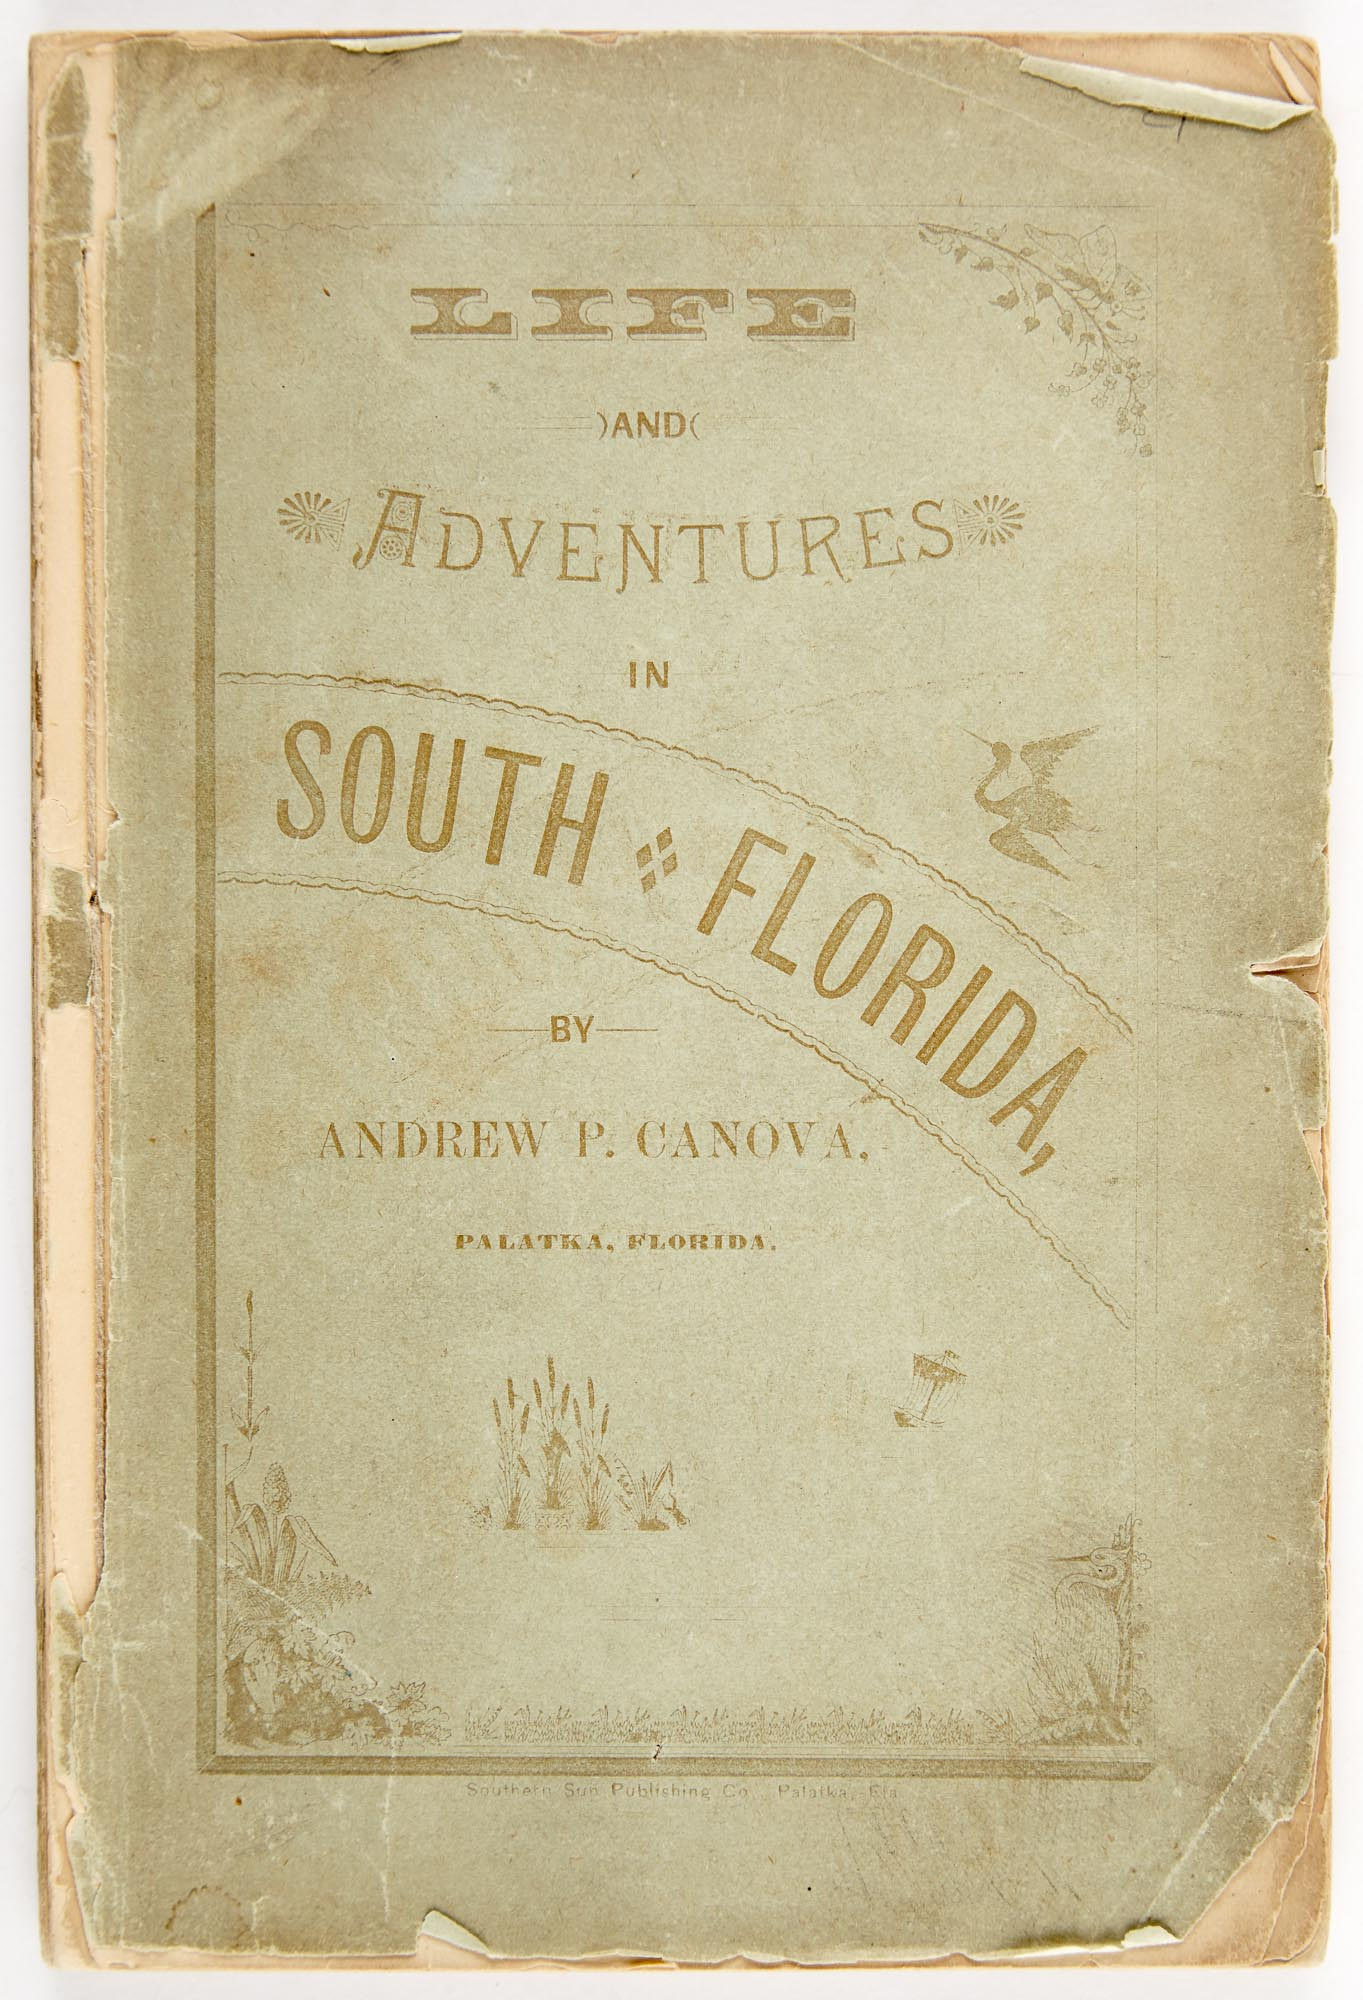 Lot image - [FLORIDA-STREETER/LITCHFIELD COPY]  CANOVA, ANDREW P. Life and Adventures in South Florida.